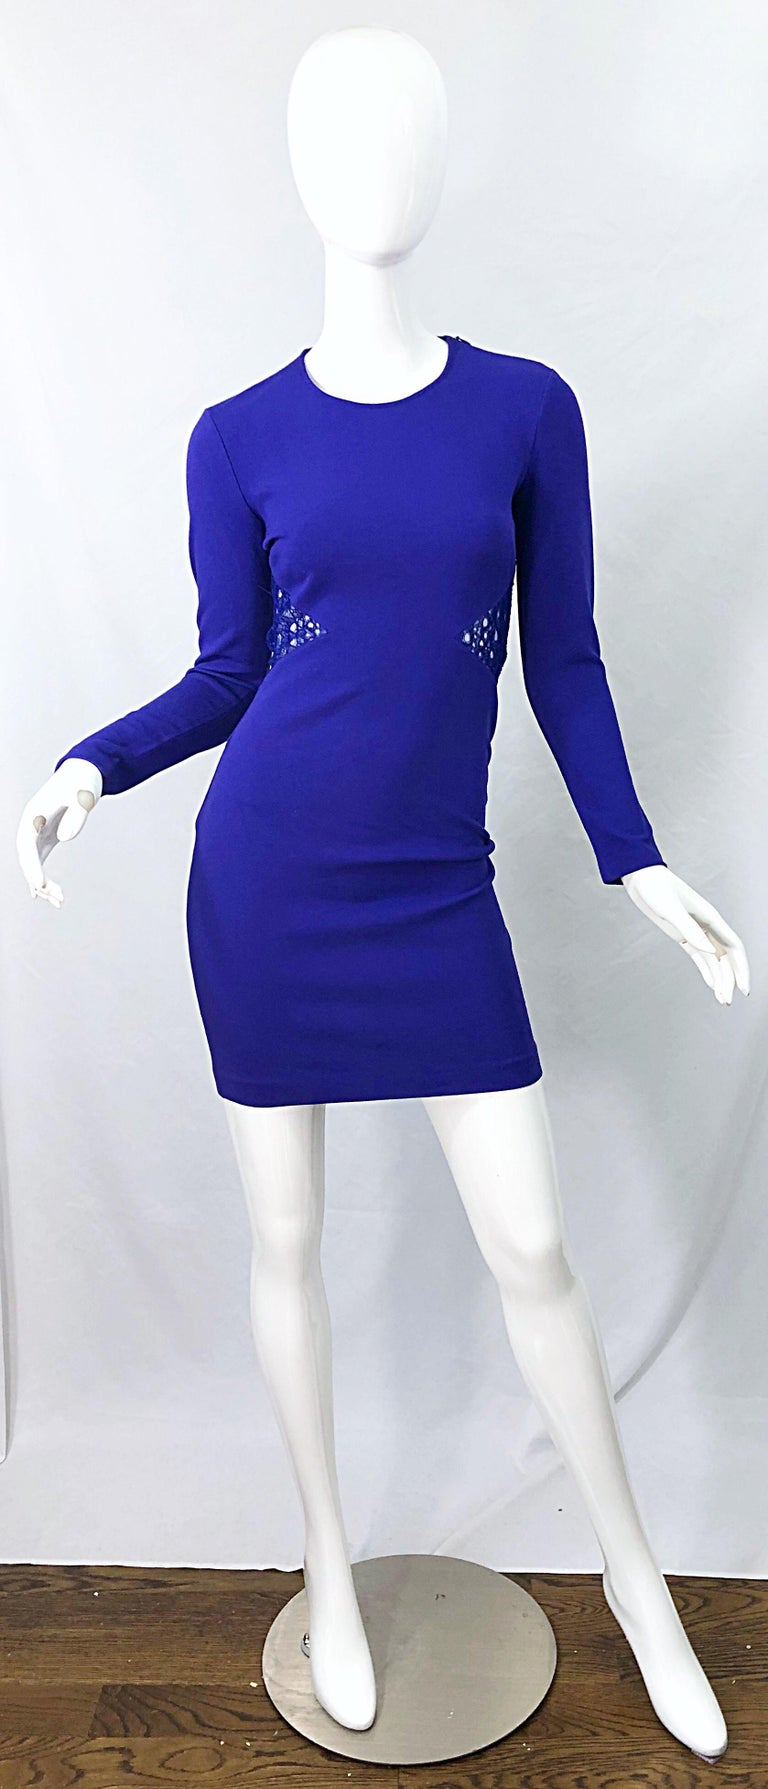 Emilio Pucci Fall 2012 Purple Rayon Lace Cut Out Long Sleeve Bodycon Dress In Excellent Condition For Sale In Chicago, IL